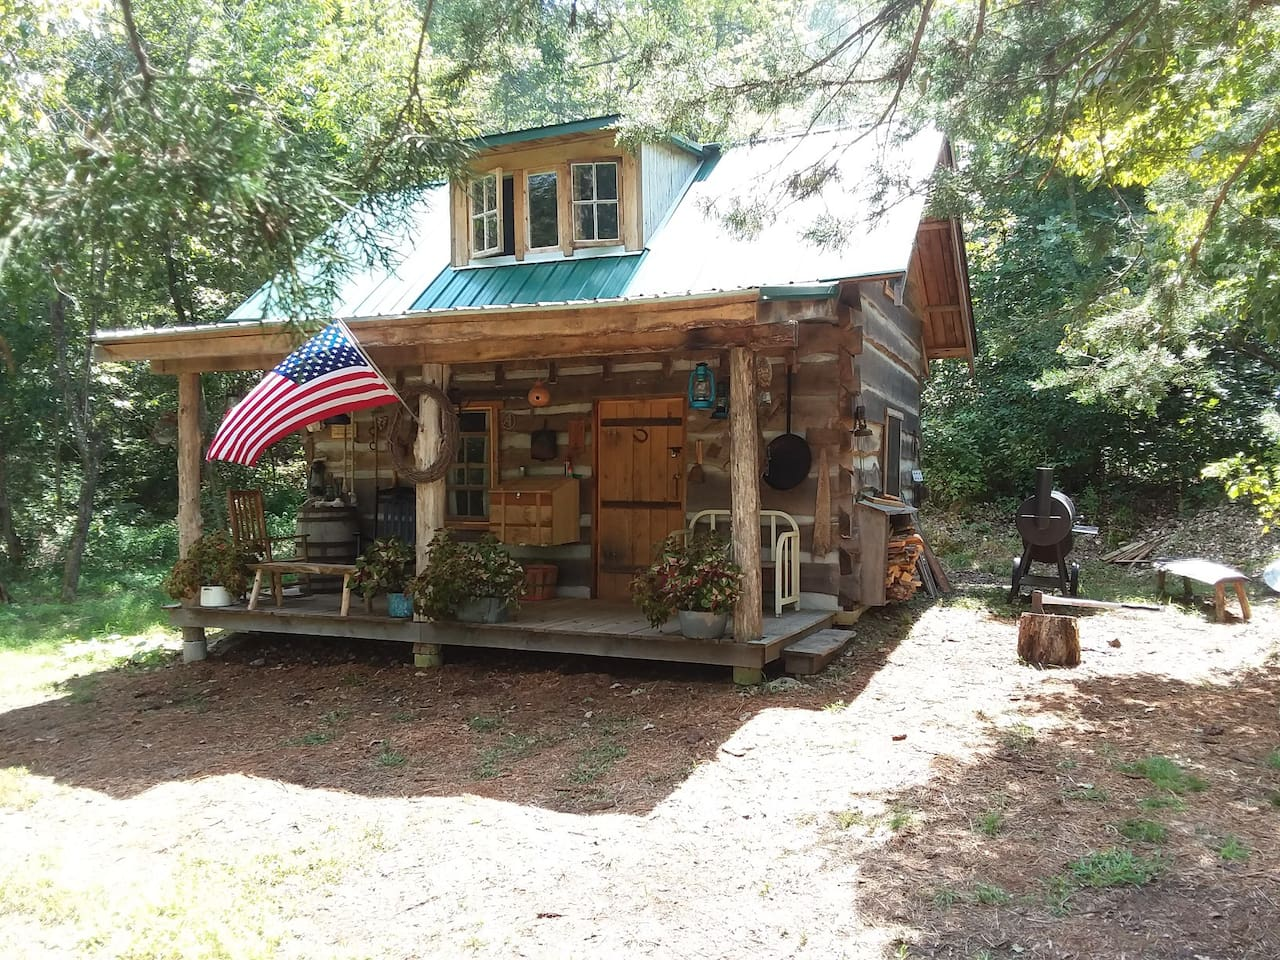 Nestled deep in the Ozark forest is this solid oak, hand-built cabin. Plan a quiet getaway today!